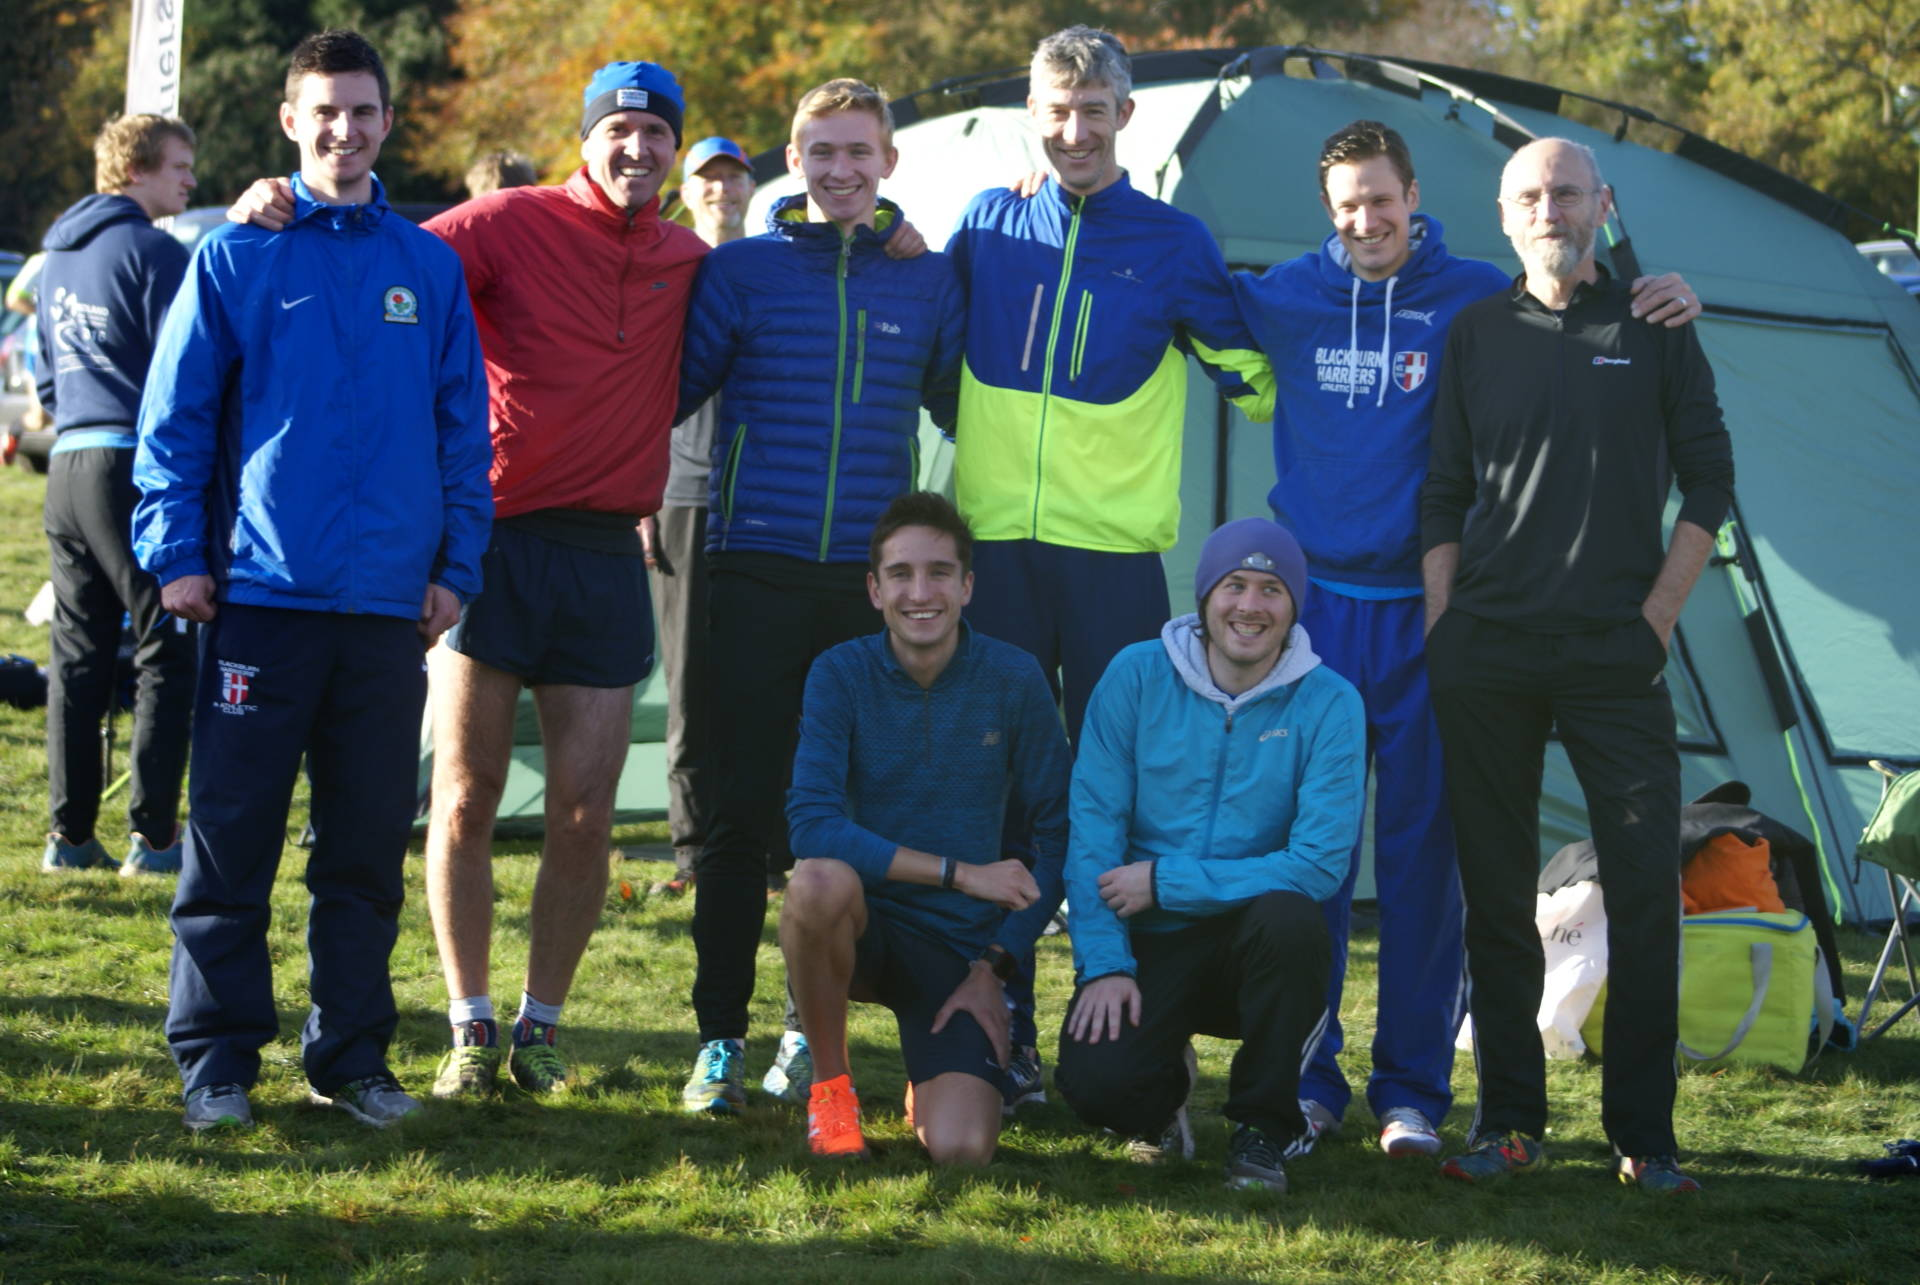 Top 30 for Harriers at Mansfield – New PB's for Tim, Joe & Ben at Abbey Dash 10k – Joanne Wins Through The Villages with Vets Wins for Gary and Janine – Lancaster Half PB for Sean – John on a Fell Double Header